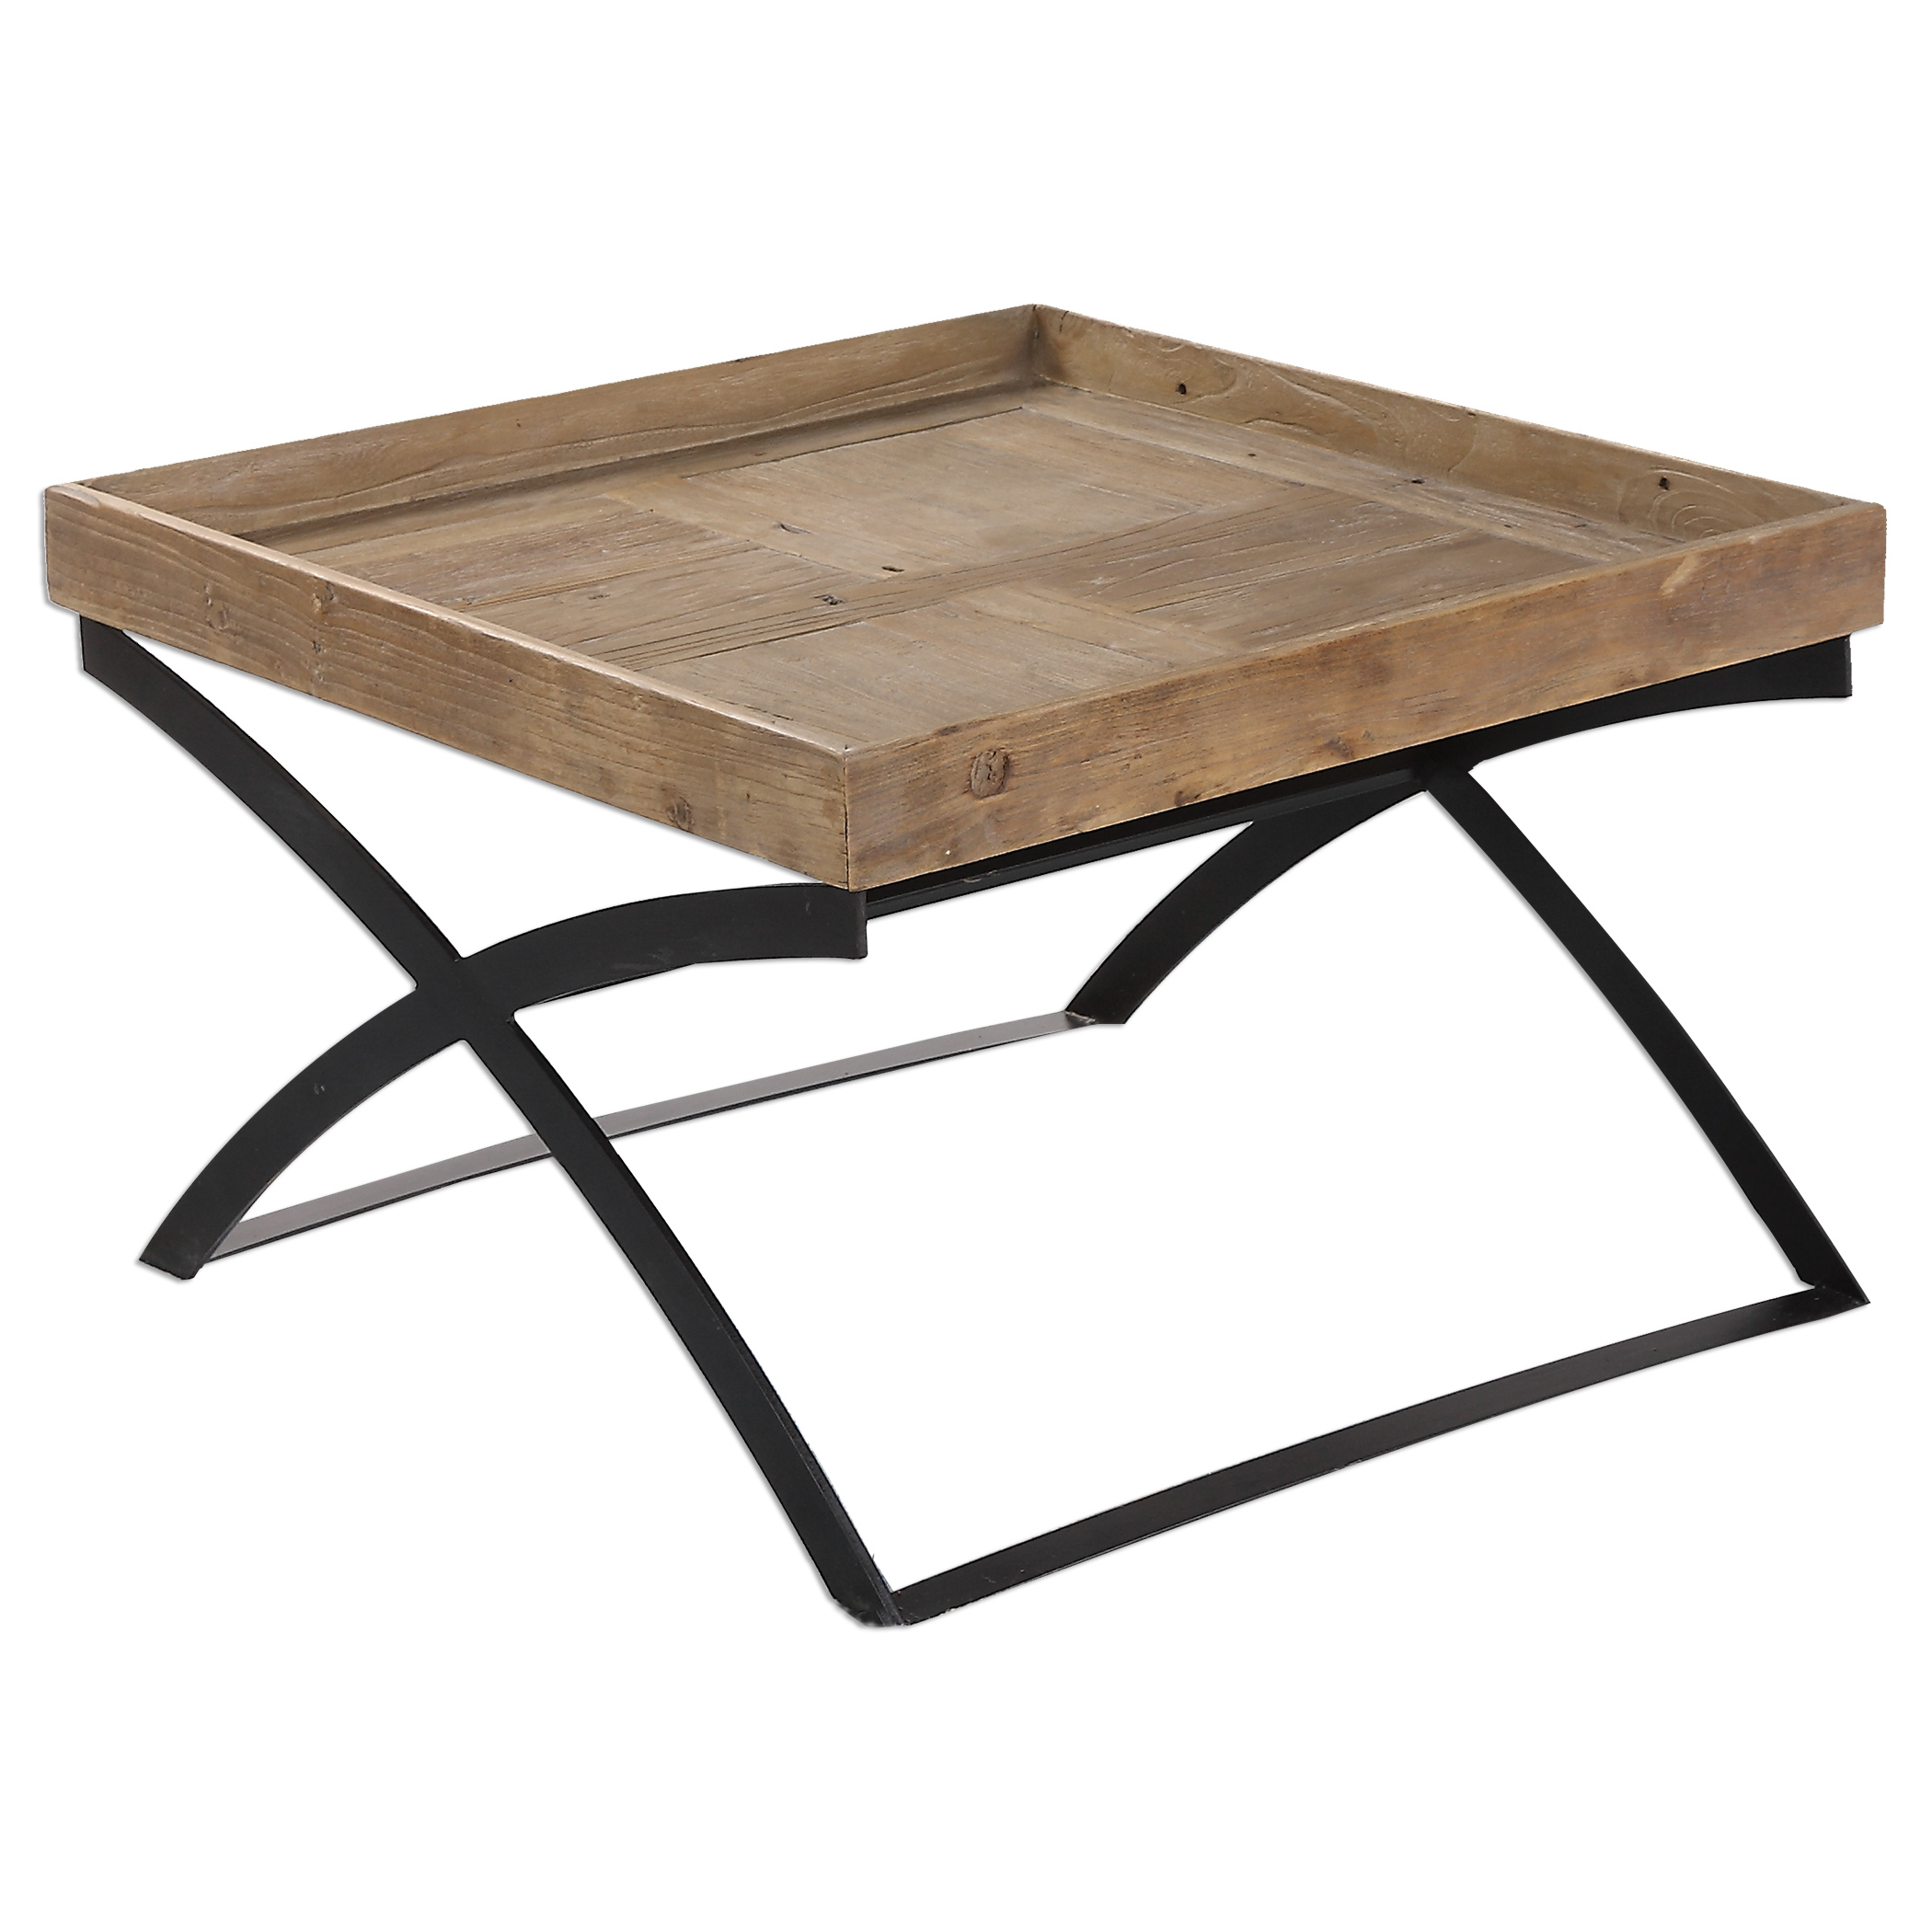 Uttermost Accent Furniture Ferox Elm Tray Coffee Table - Item Number: 24574